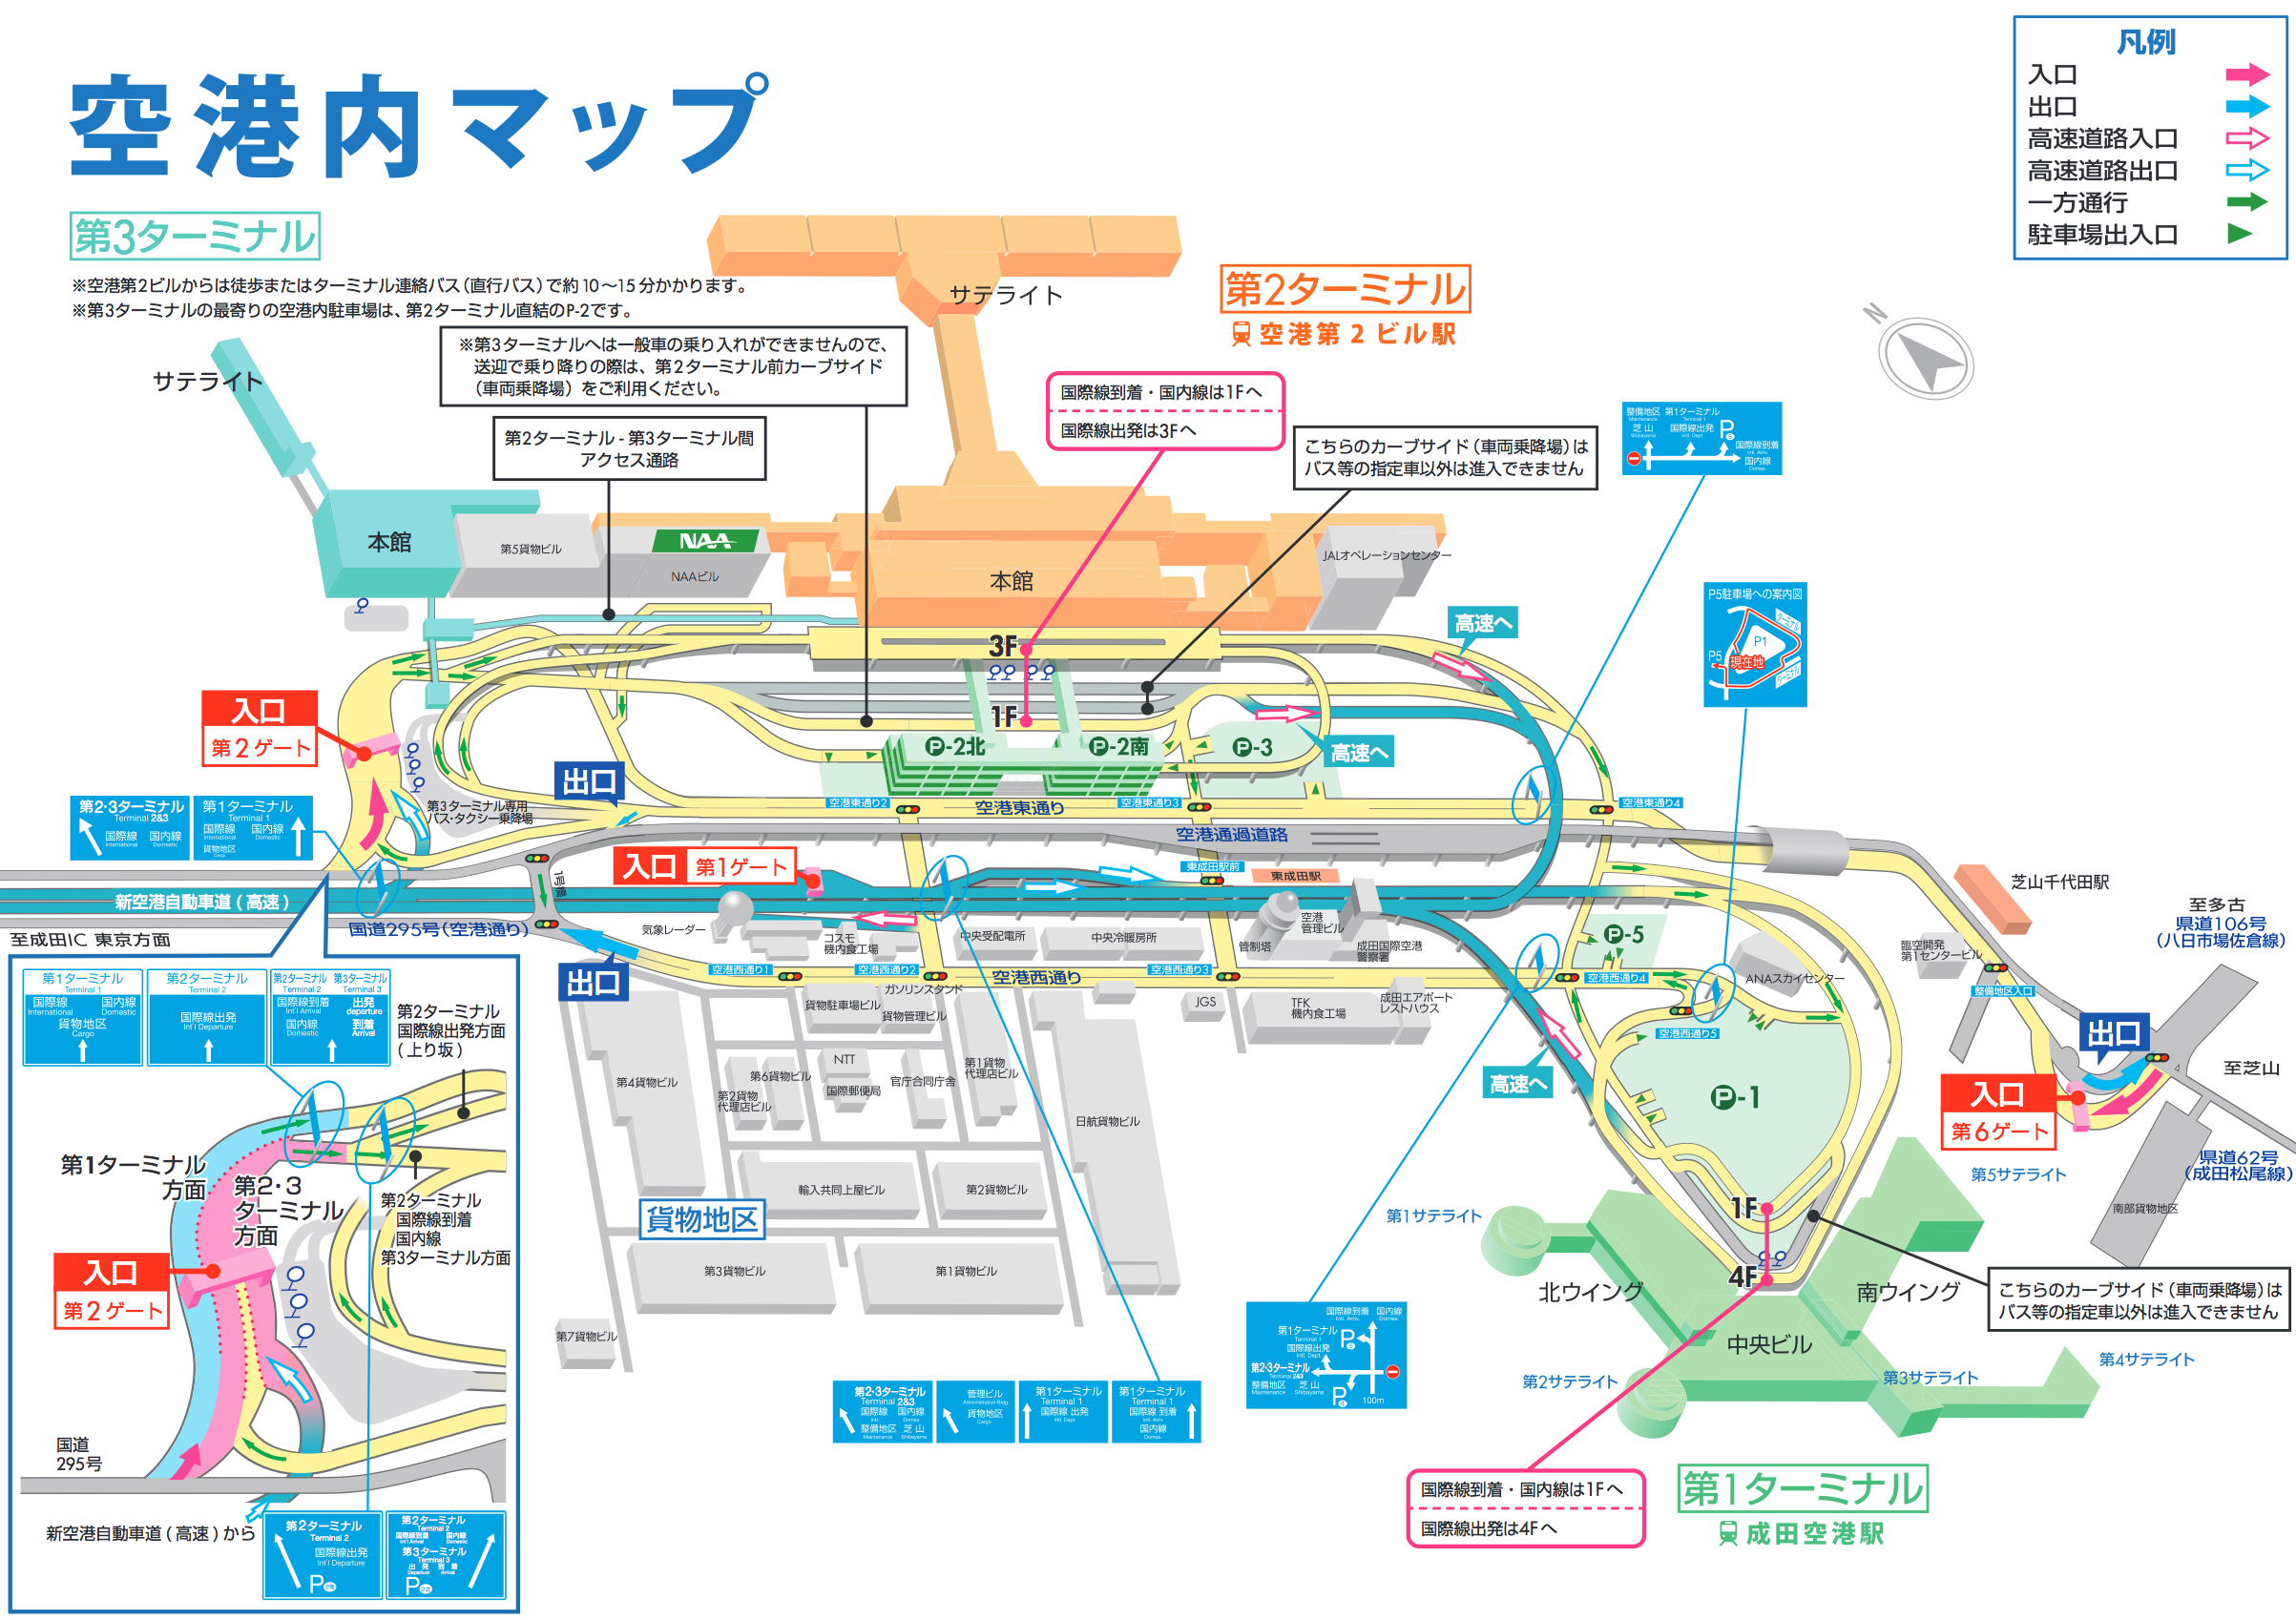 lcc map with 2146294959942471001 on Subacromial Bursitis likewise Peach Aviation Japans First Lcc Continues Expansion As Japan Surpasses Tourism Targets 256451 together with Auto technology as well Airasia Aircraft Seatmap additionally London Borough of Tower Hamlets.